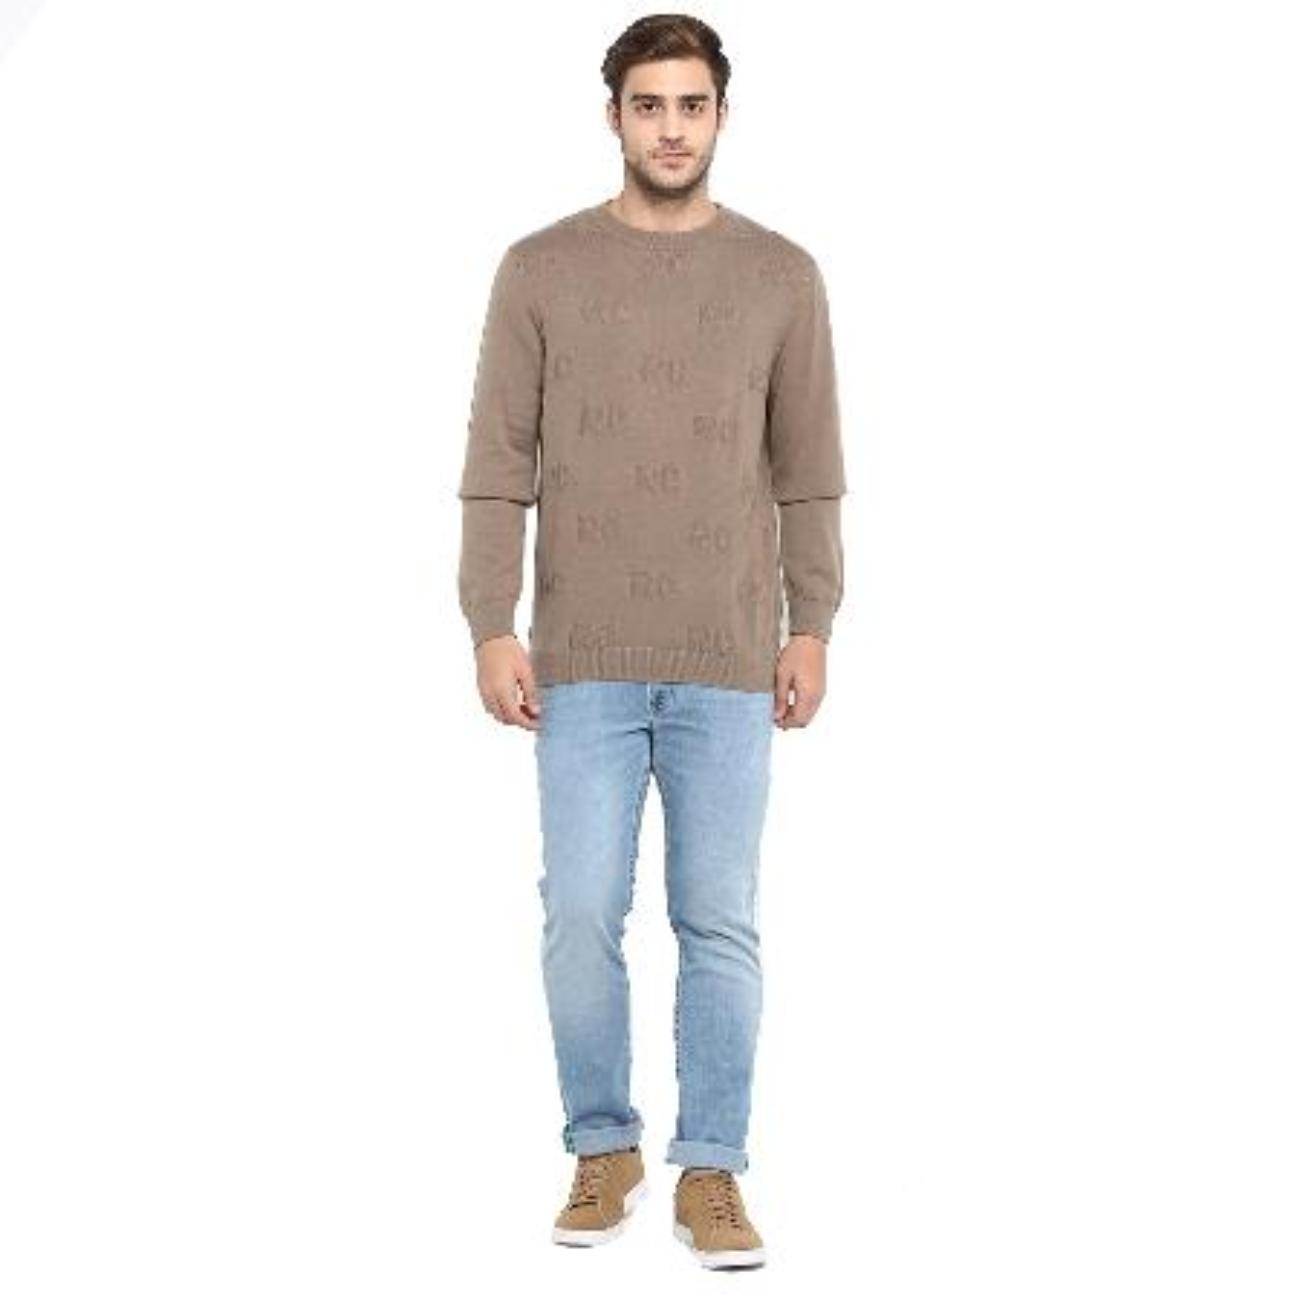 Buy Brown Sweater for Men from Red Chief